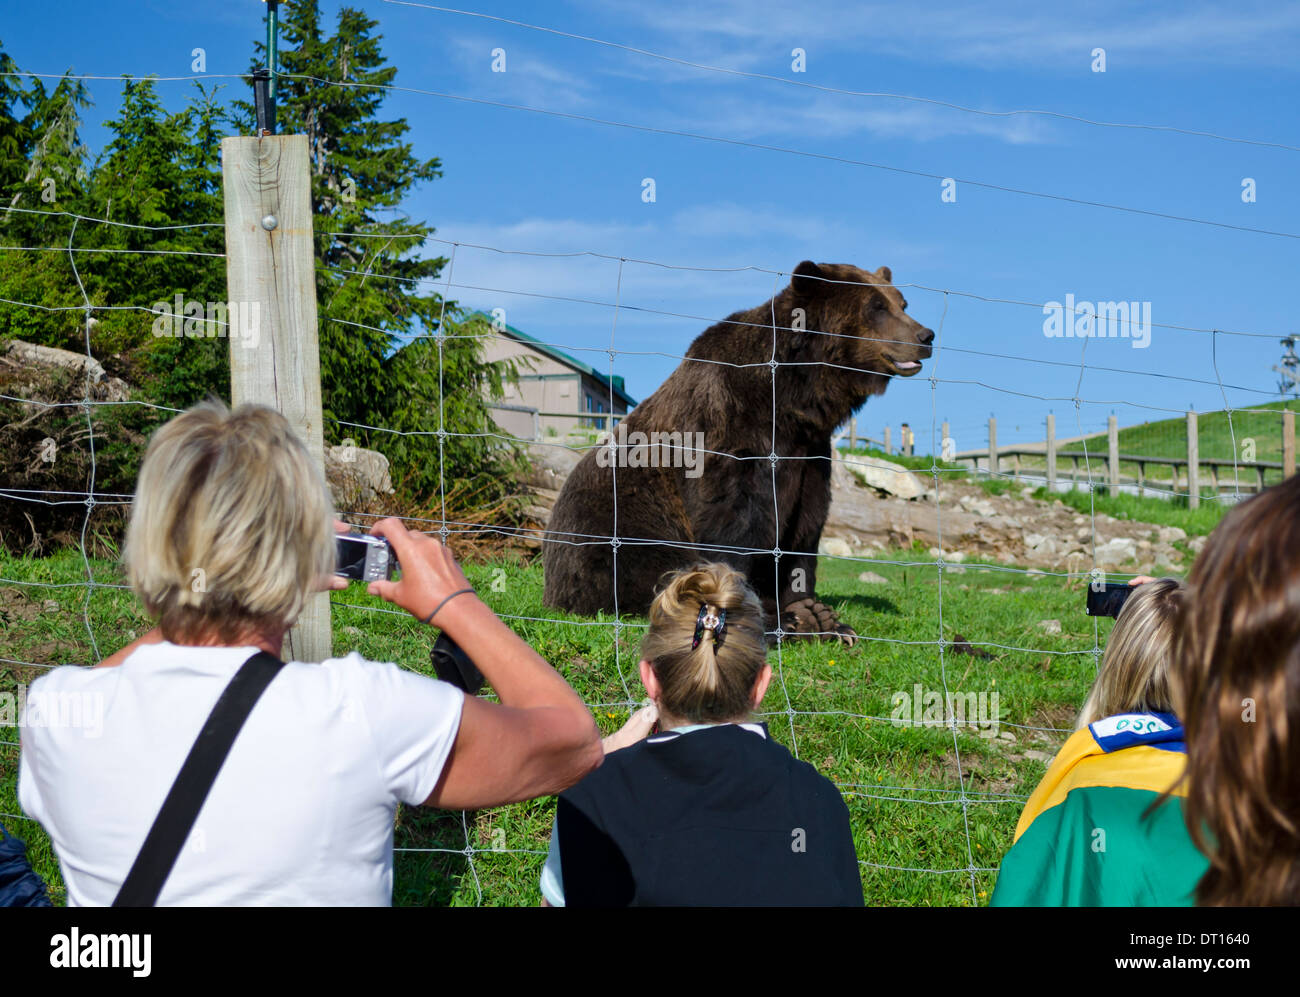 Tourists taking photographs of a grizzly bear living in an enclosed wildlife refuge atop Grouse Mountain in Vancouver, BC. - Stock Image